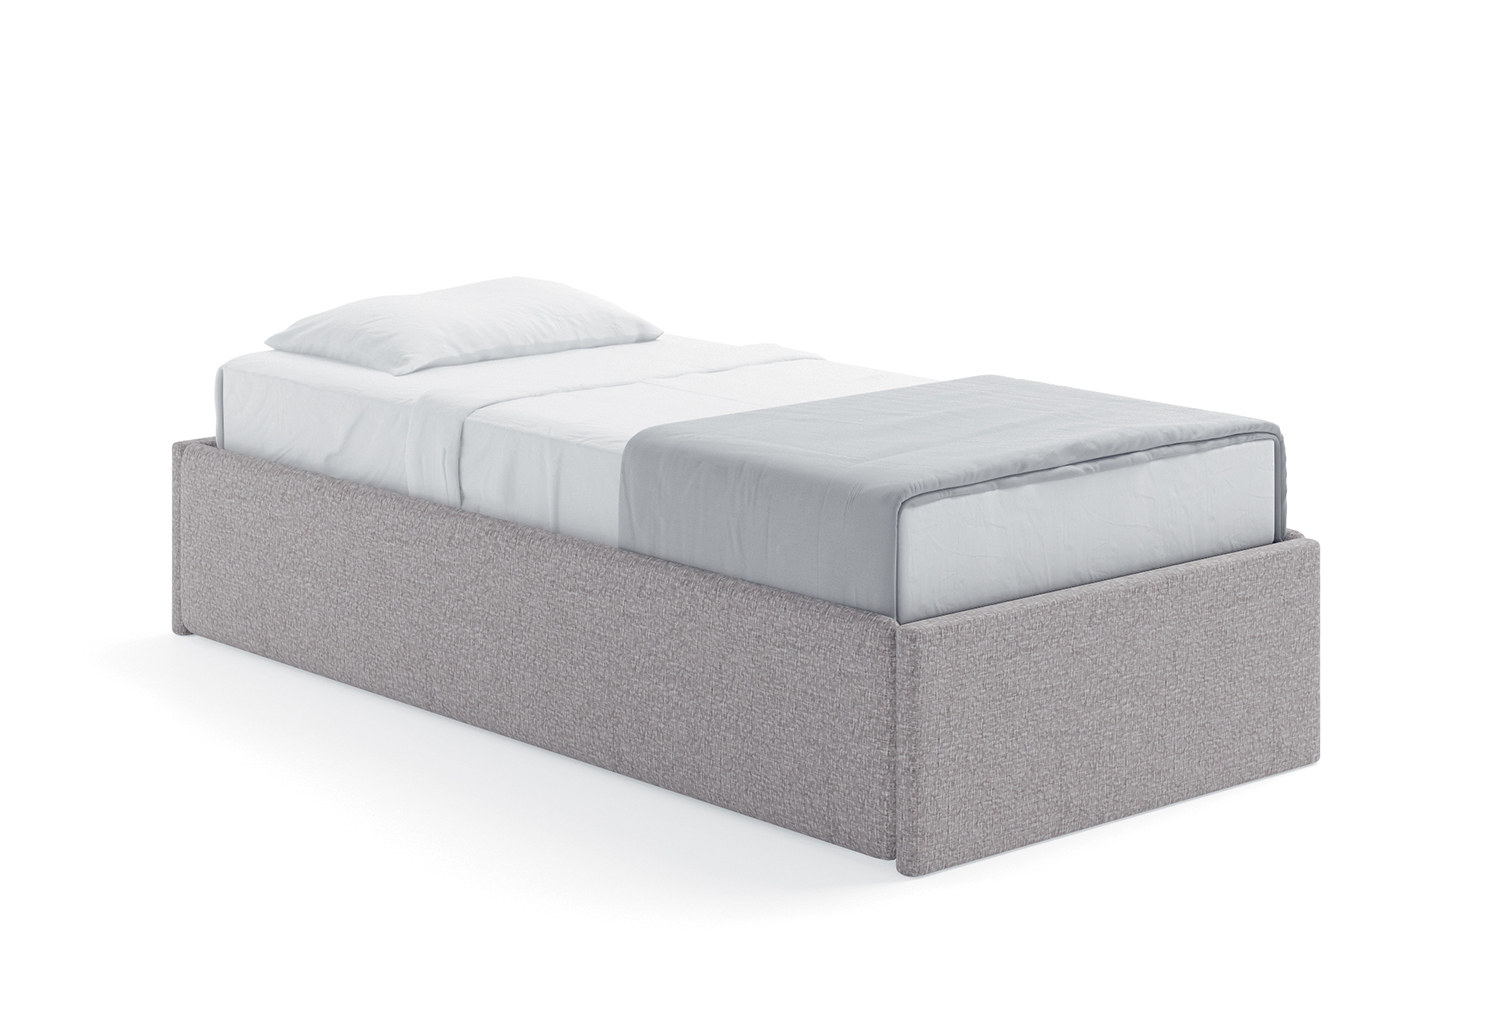 Letto sommier singolo less sommier clever it - Letto sommier contenitore ...